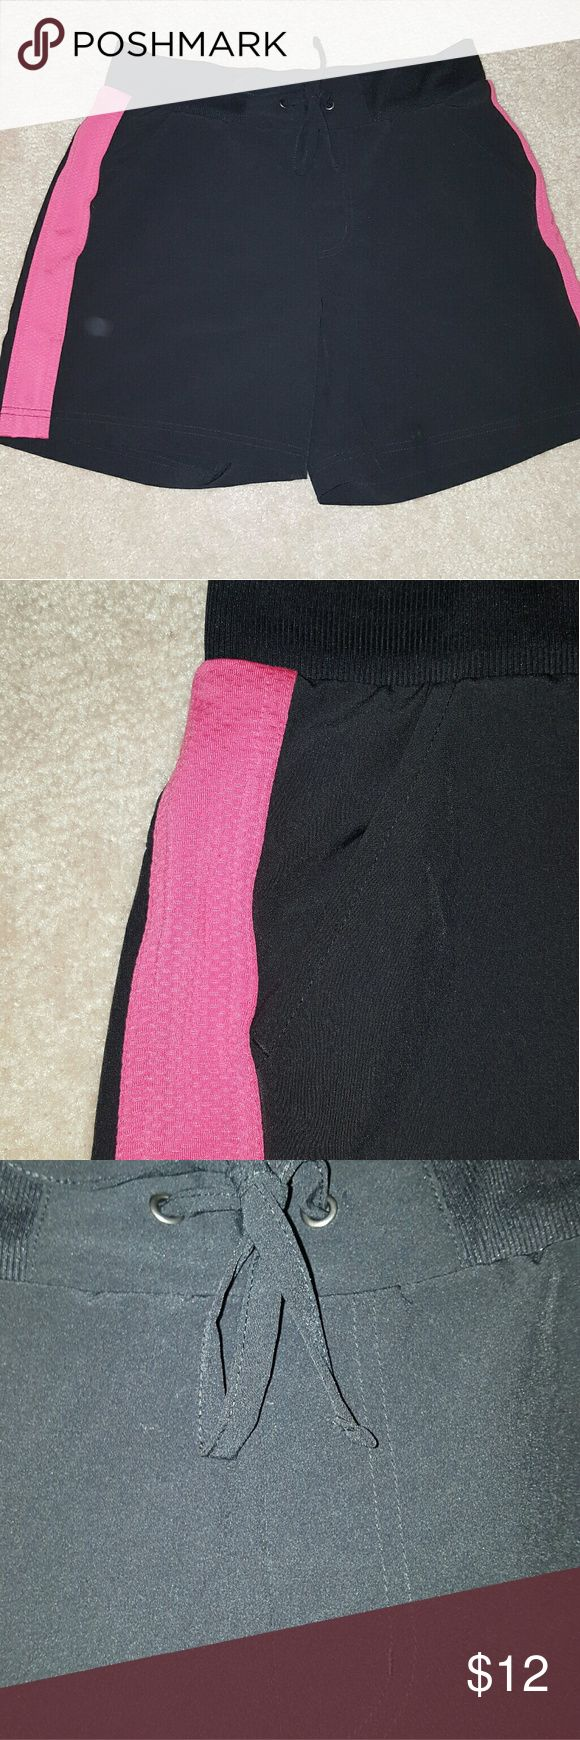 Ladies sports shorts Ladies running /sport shorts. Silky breathable fabric. Elastic wait with drawstring. Two front pockets  excellent condition tek gear Shorts Bermudas